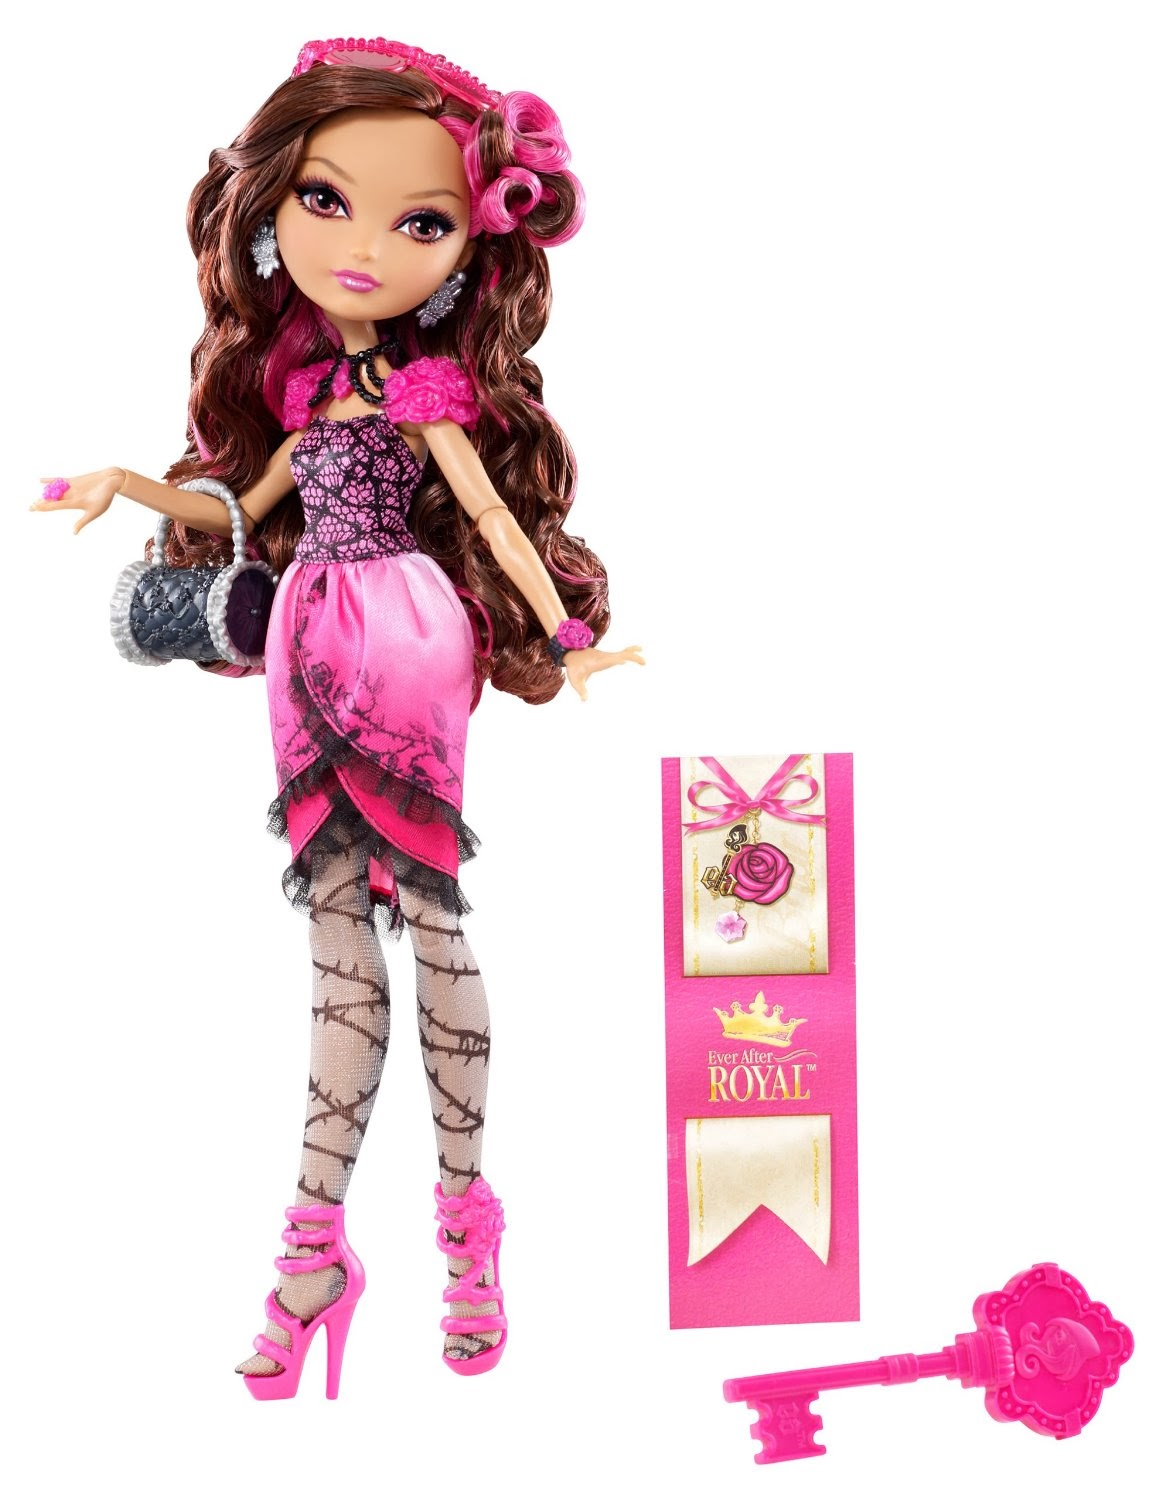 TOYS : Briar Beauty : Ever After High | DOLL | MUÑECA | BRIAR BEAUTY Es la hija deLa Bella Durmiente